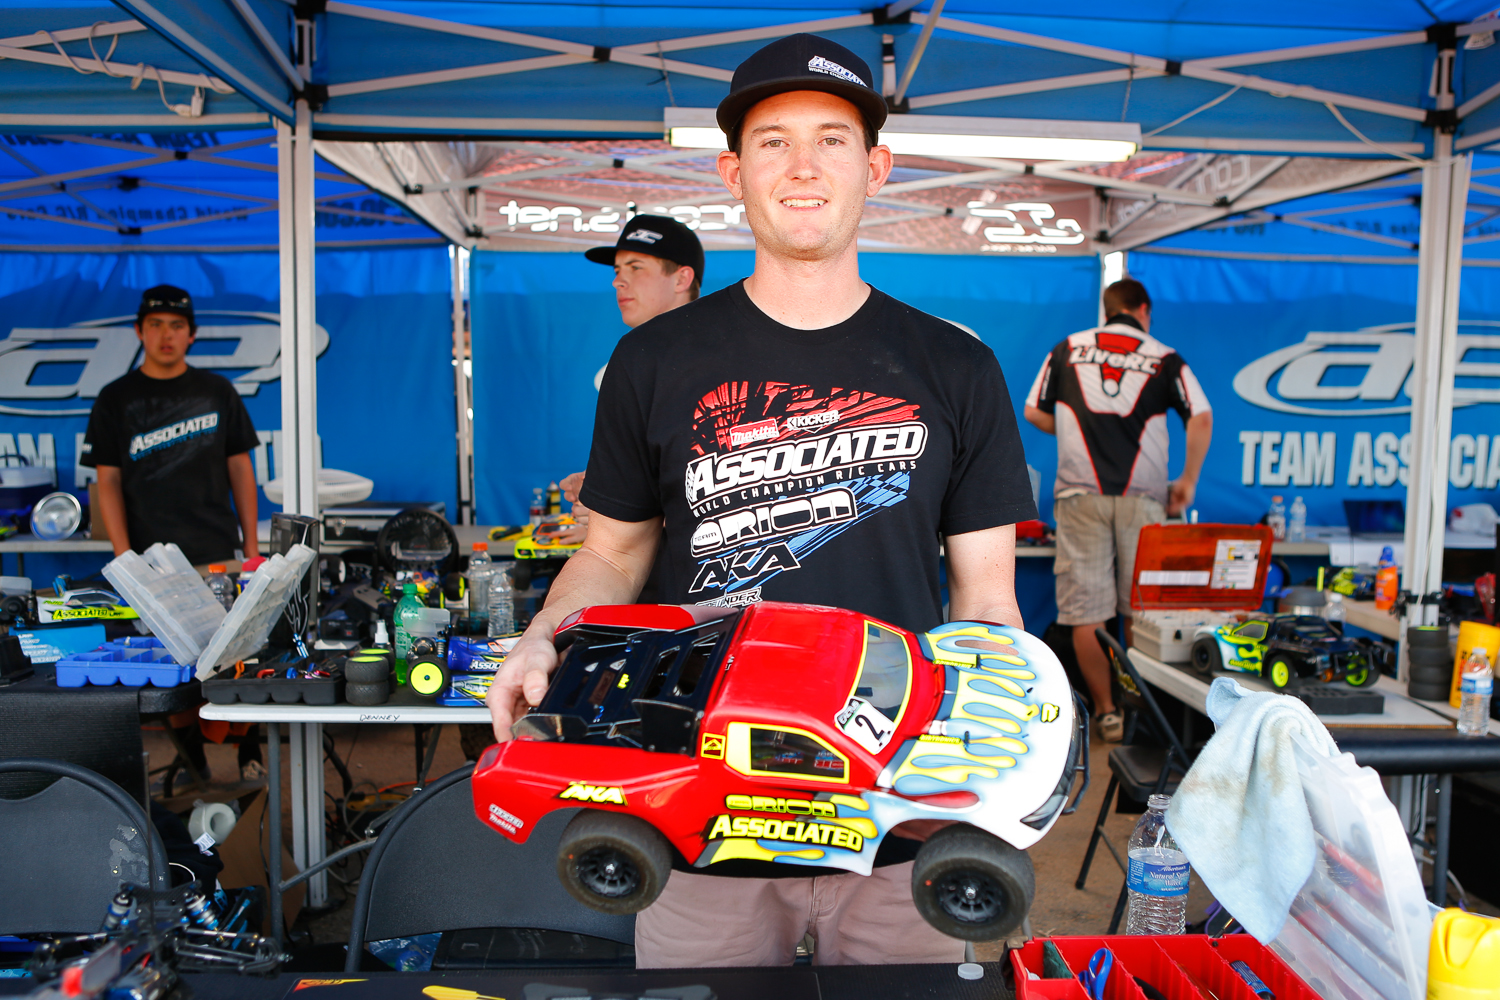 2013 Cactus Classic: Final Round of A-Main Results